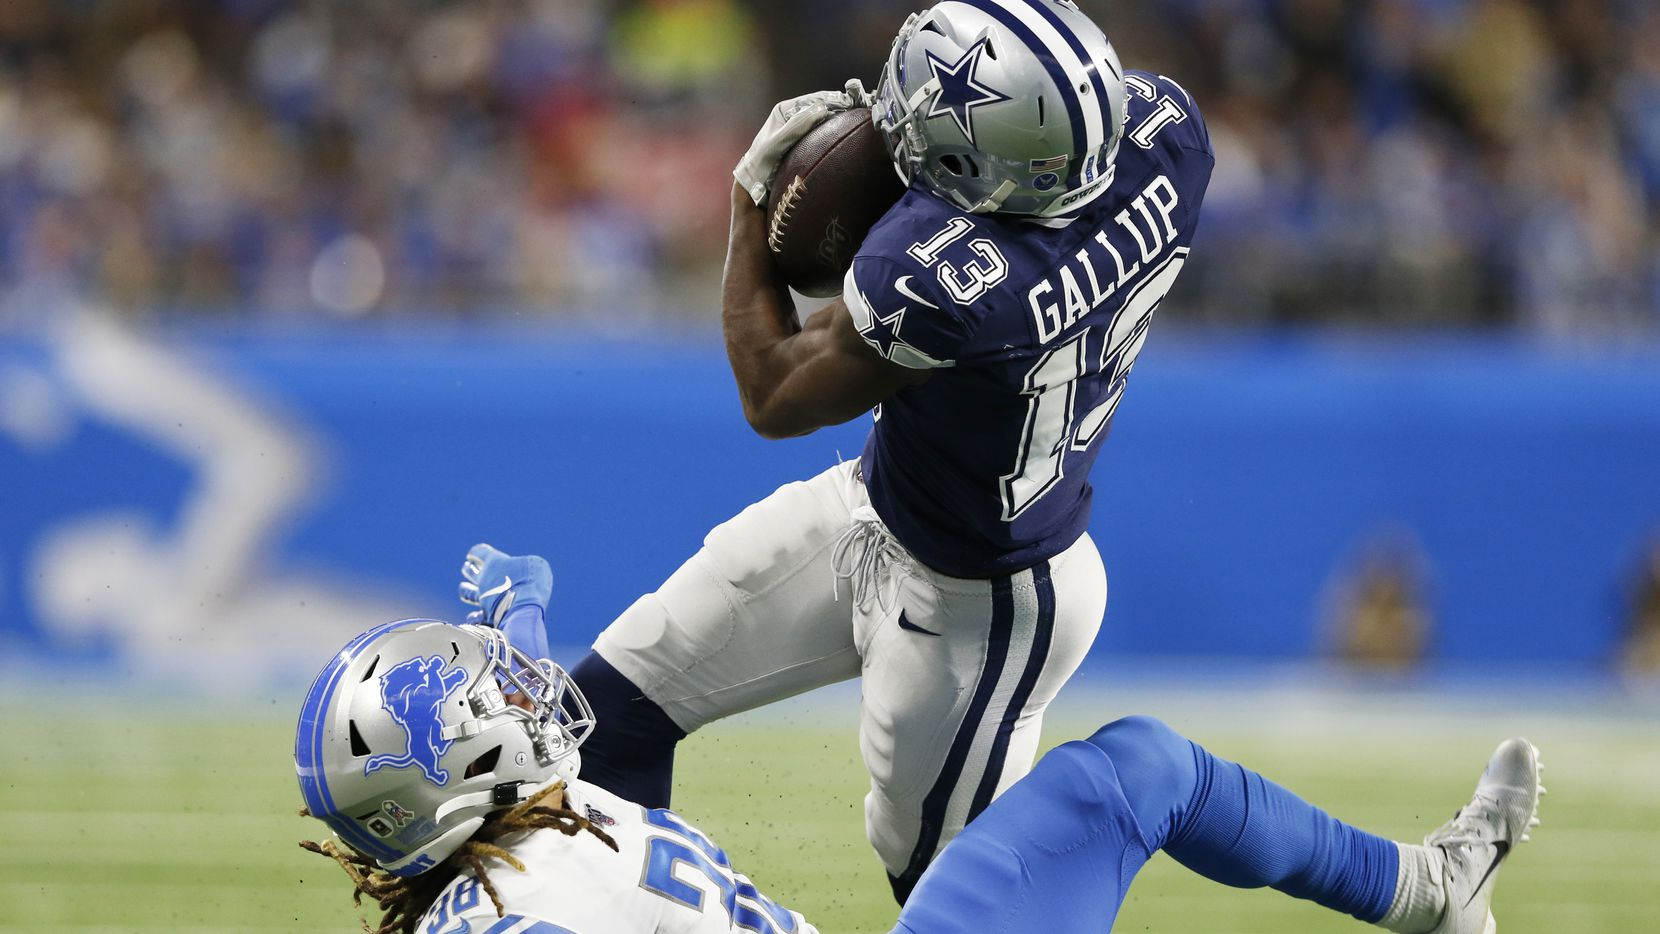 Dallas Cowboys wide receiver Michael Gallup (13) catches a ball hit by Detroit Lions defensive back Mike Ford (38) during the first half of play at Ford Field in Detroit, on Sunday, November 17, 2019. (Vernon Bryant/The Dallas Morning News)